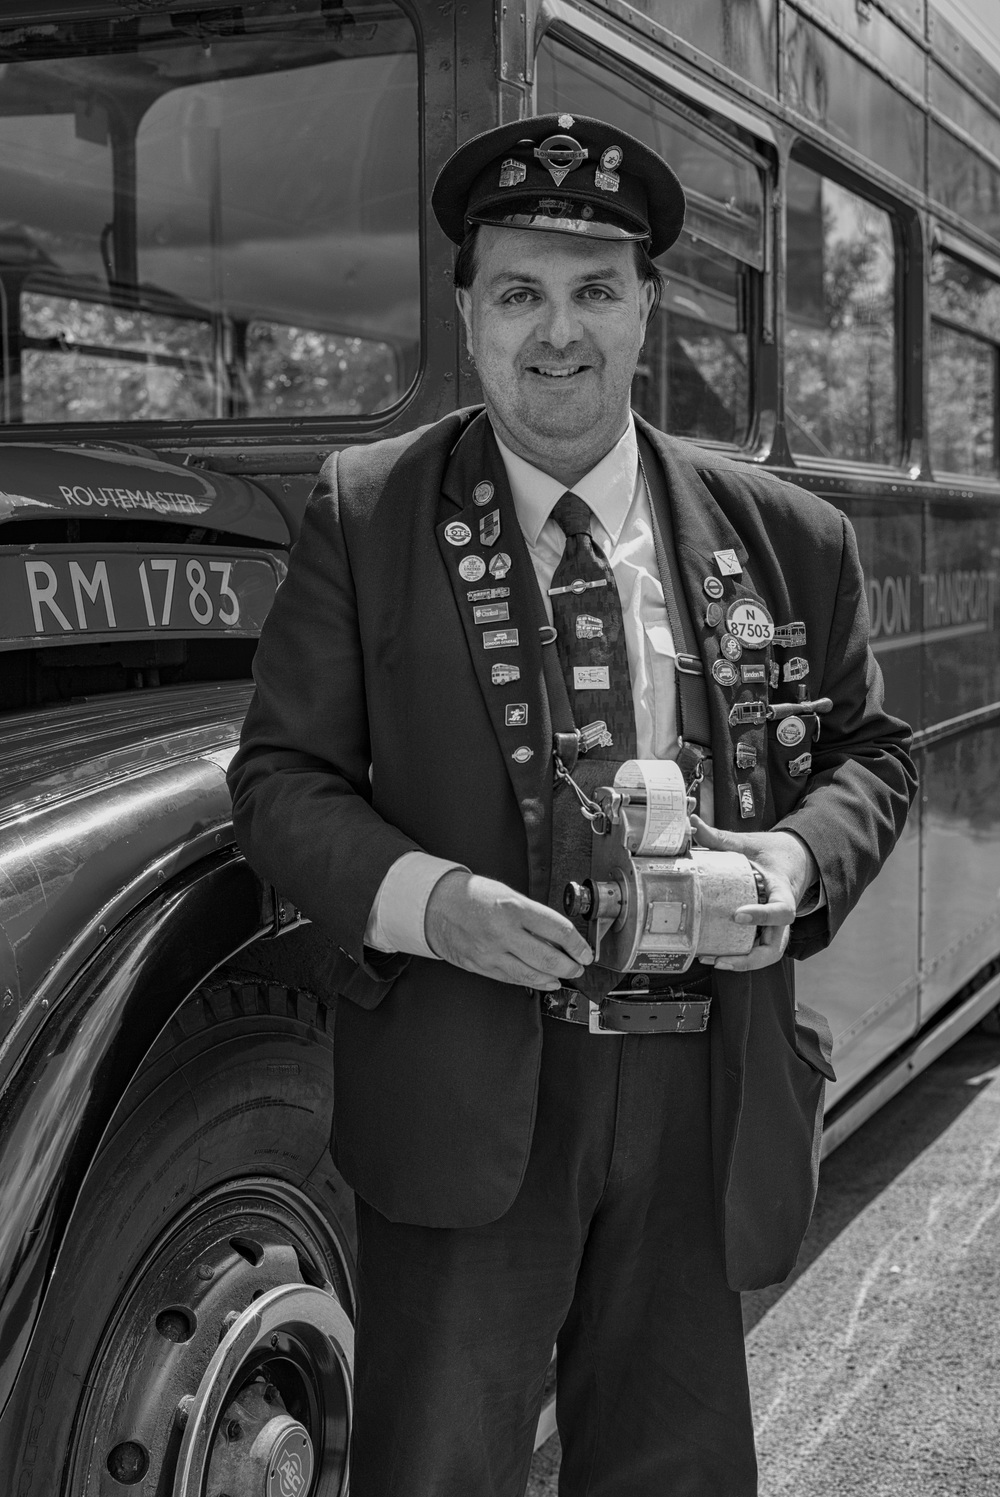 Michael, a former bus conductor, can't keep away from the Routemaster. Here he is in full uniform, festooned with badges and grinding his period ticket machine